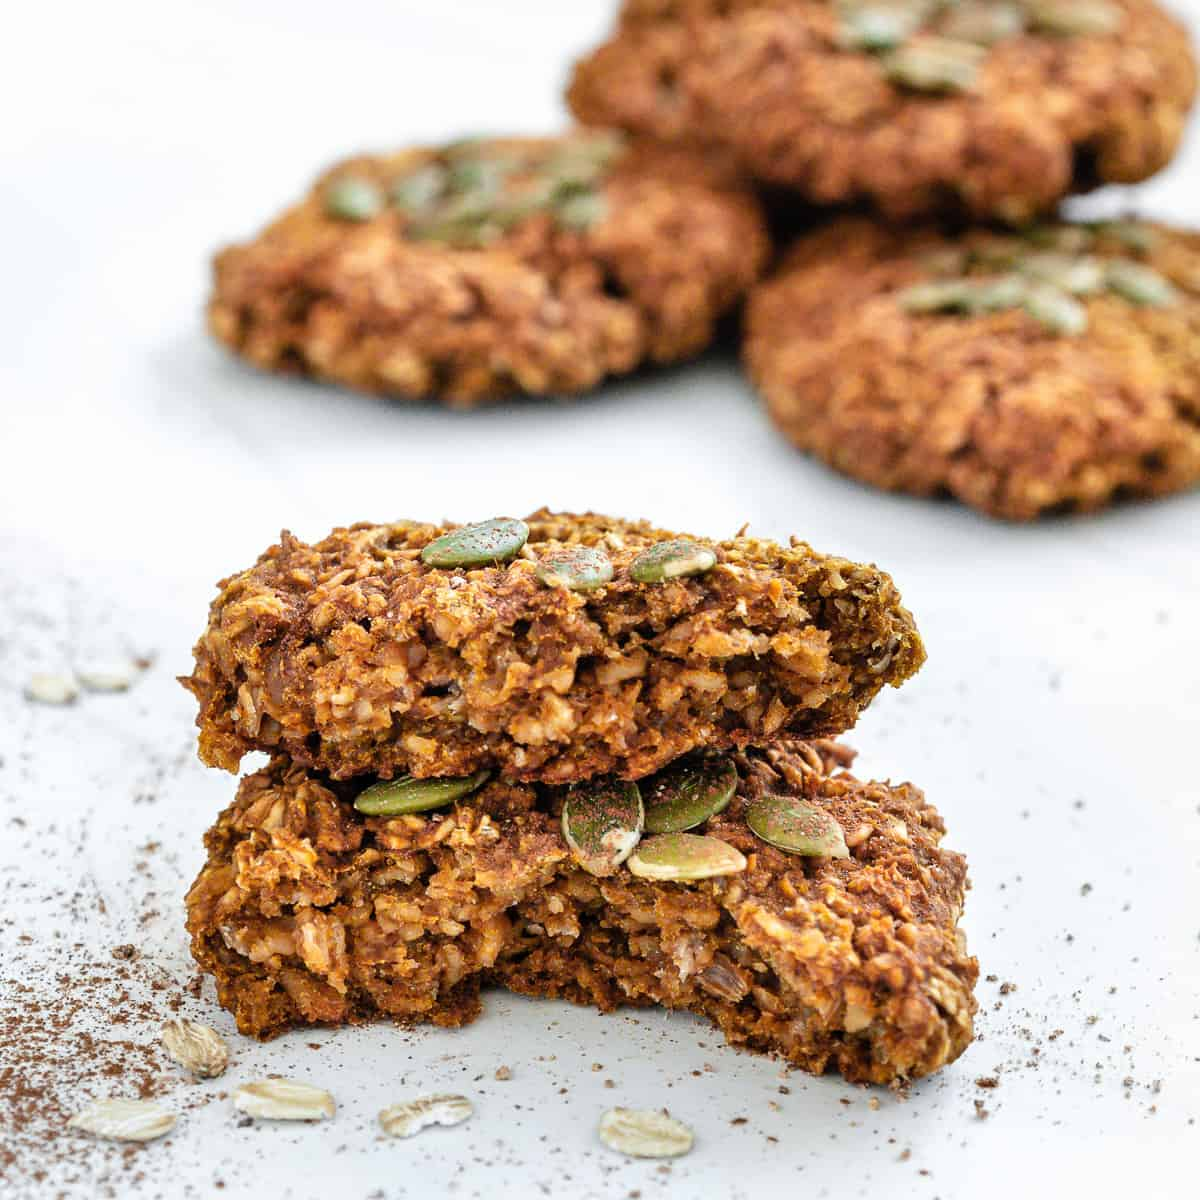 completed close up of Vegan Pumpkin Oatmeal Cookies against a white surface